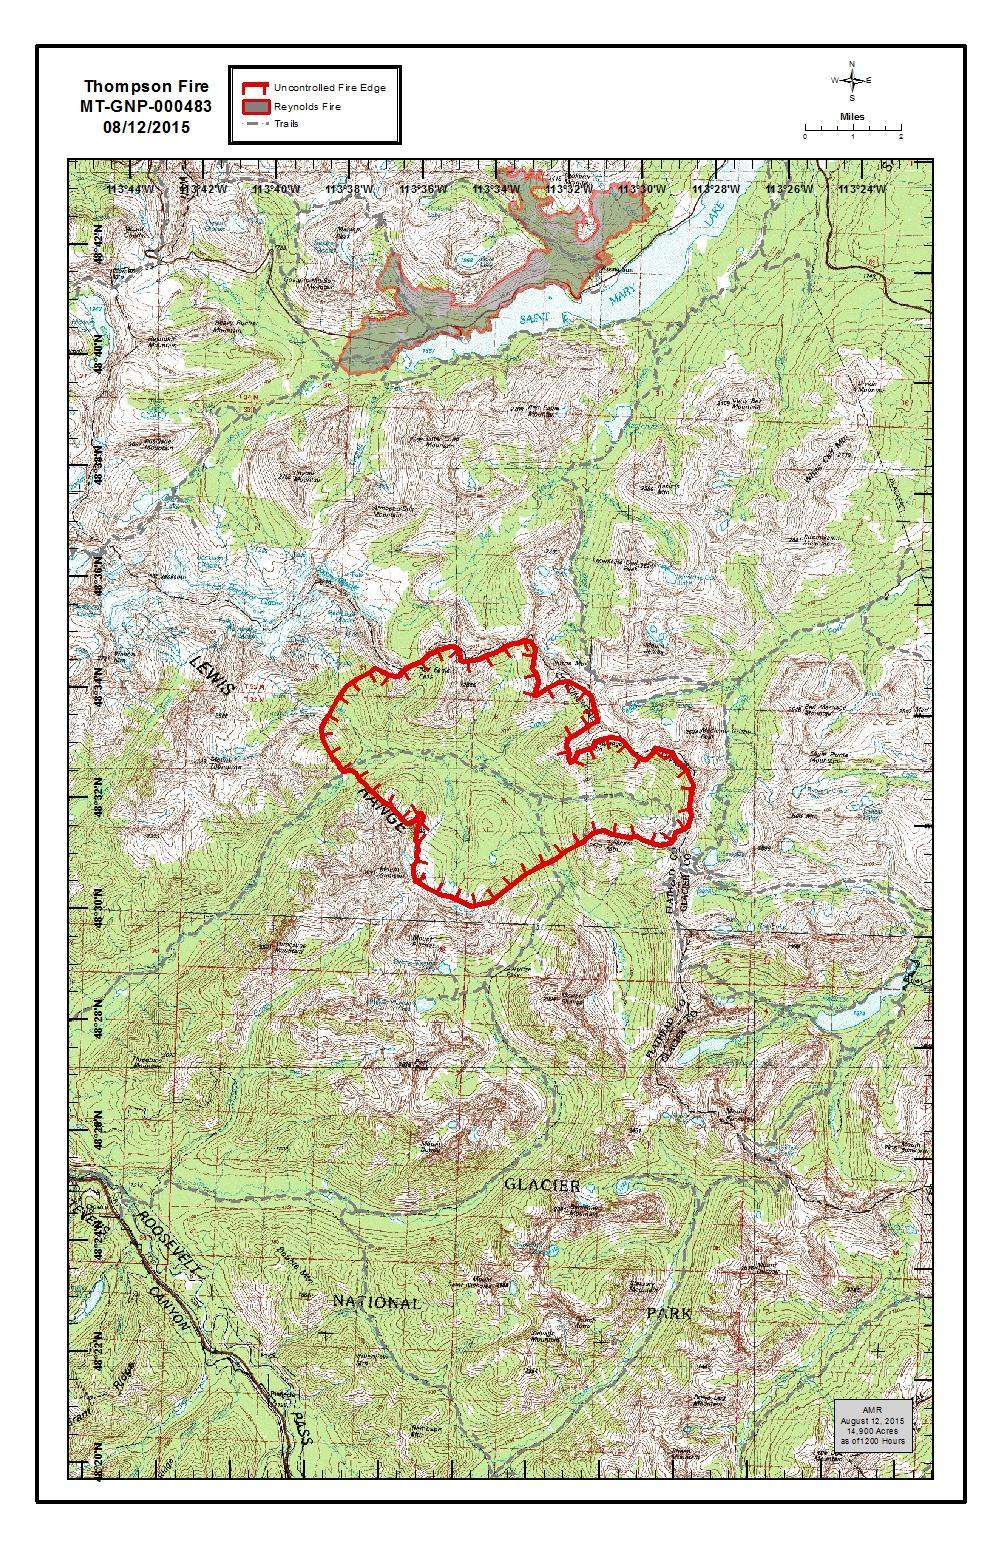 Thompson Fire Perimeter, Aug 12, 2015 PM